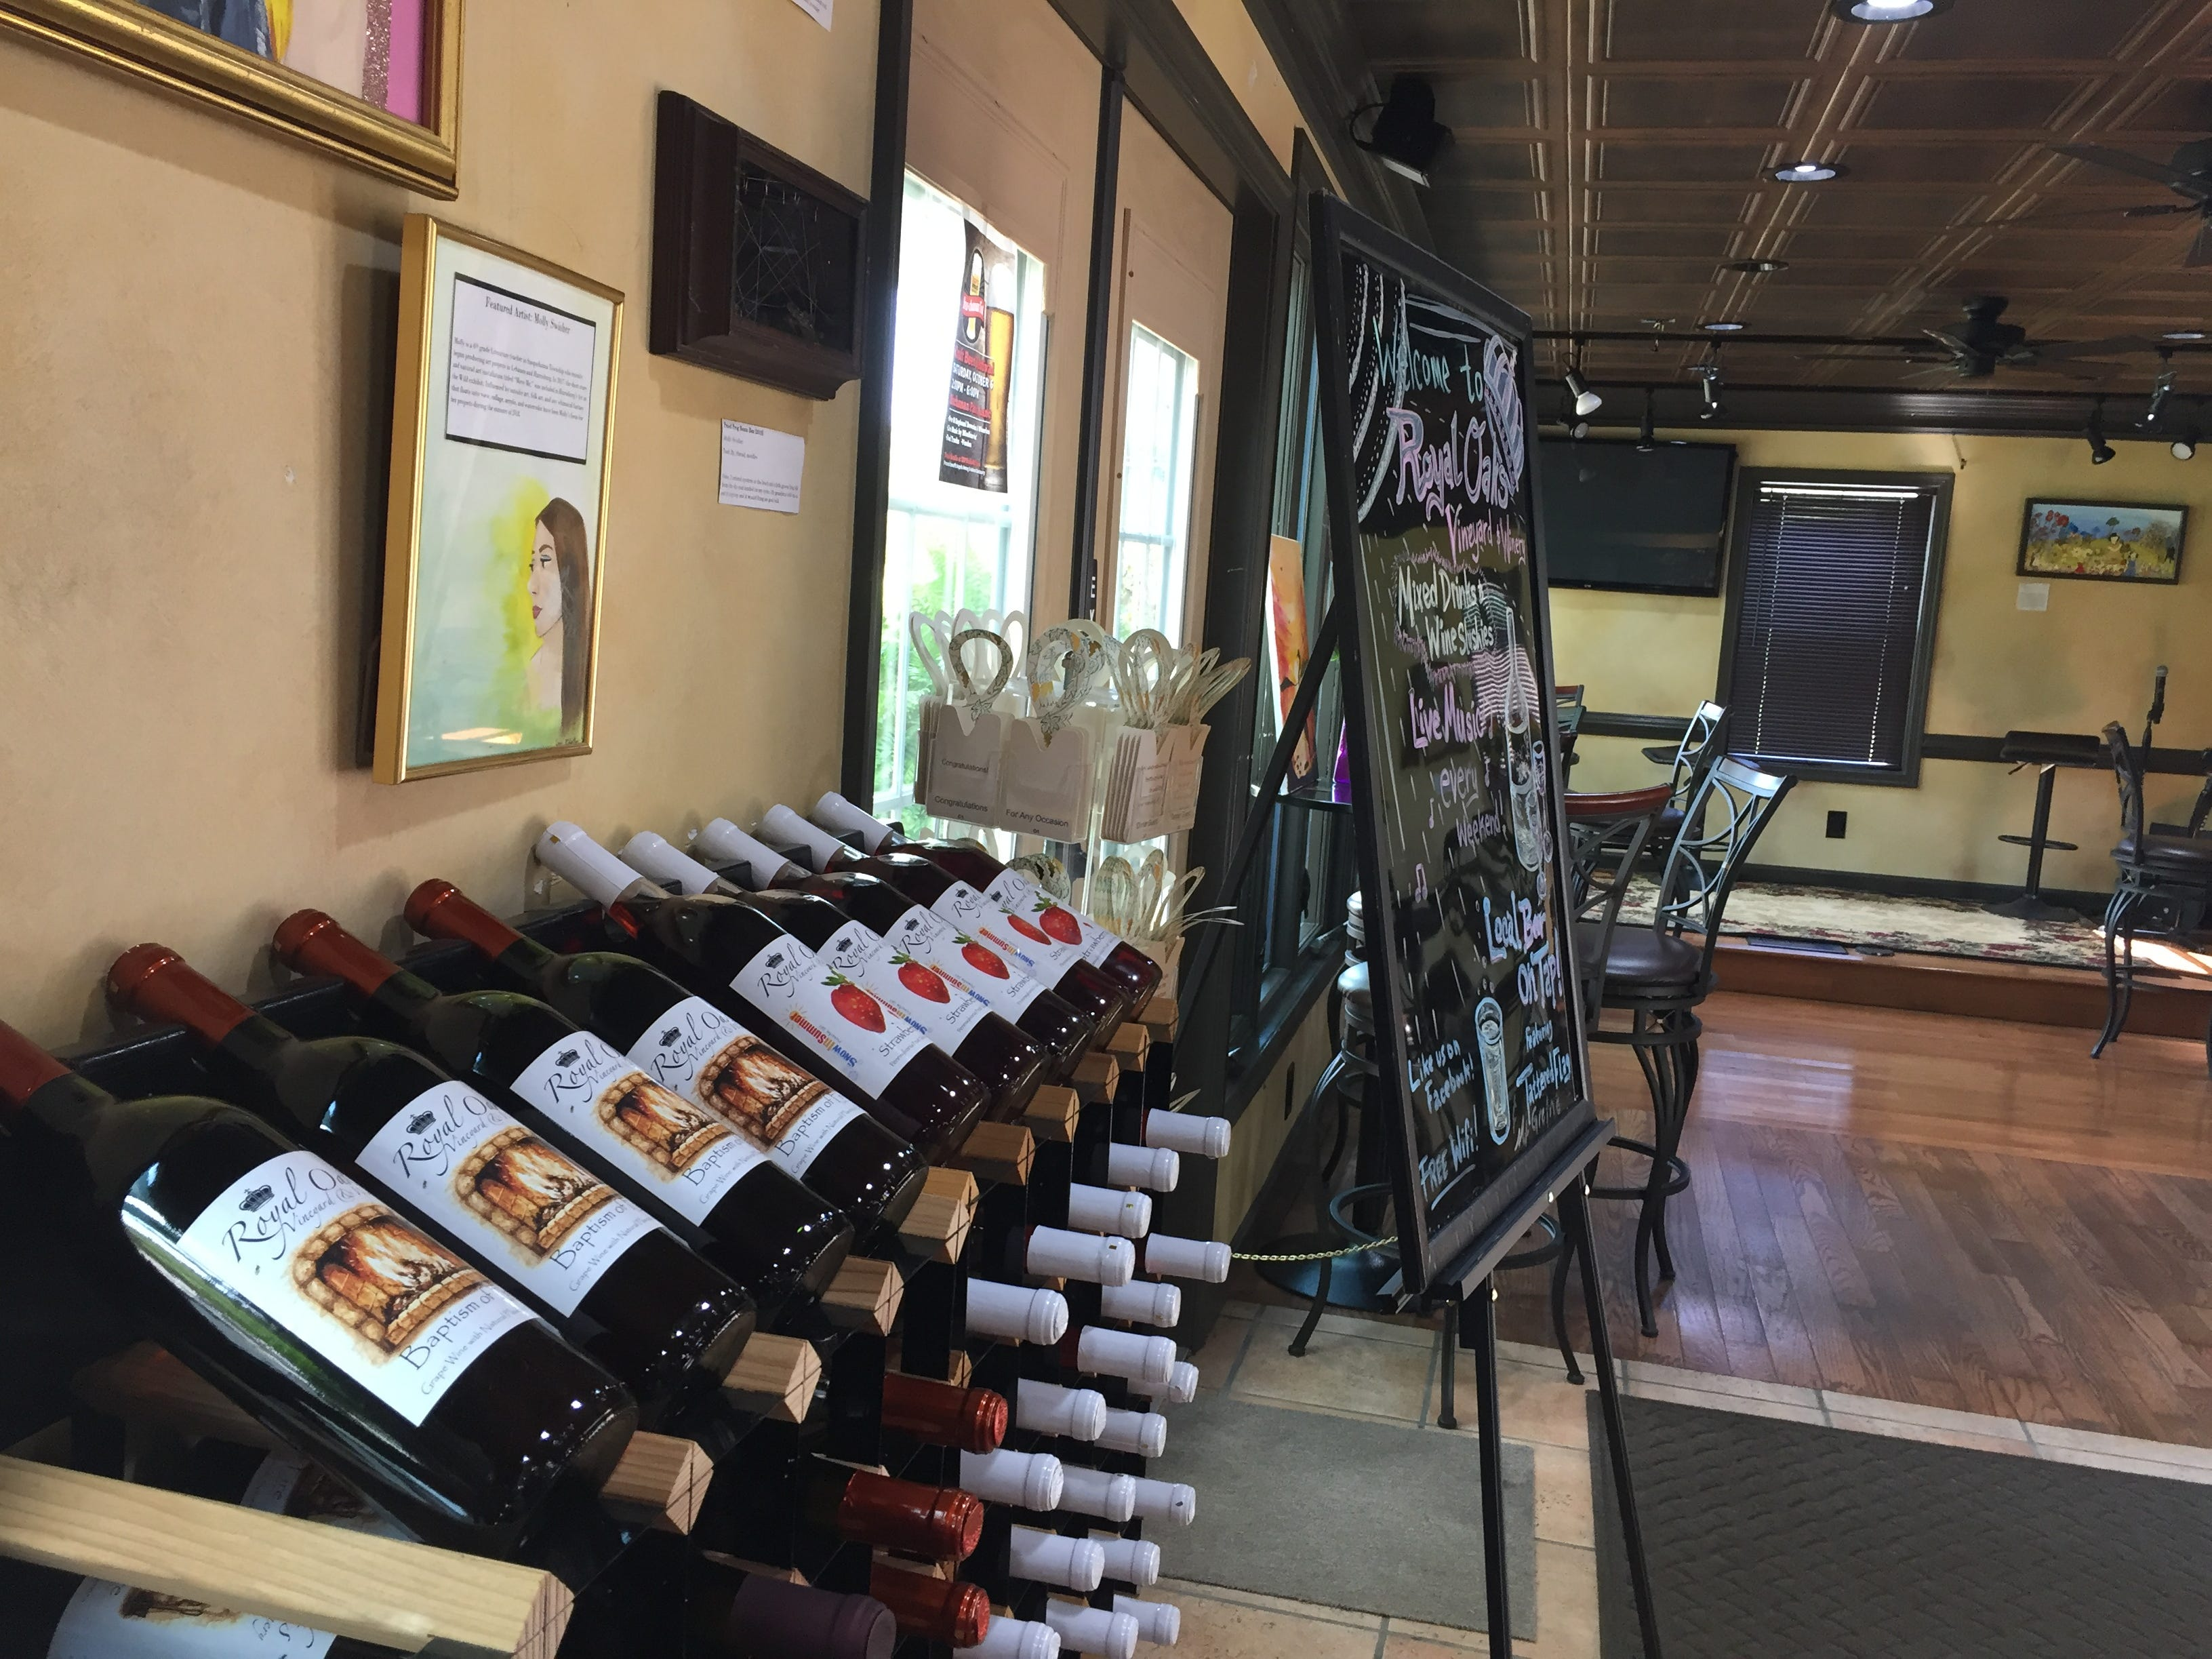 Inside the tasting room at Royal Oaks Vineyard & Winery located at 399 Royal Road, Aug. 29, 2018. The winery has remained open despite an ongoing legal battle over zoning issues between Bill Hartmann, the winery's owner, and North Cornwall Township.